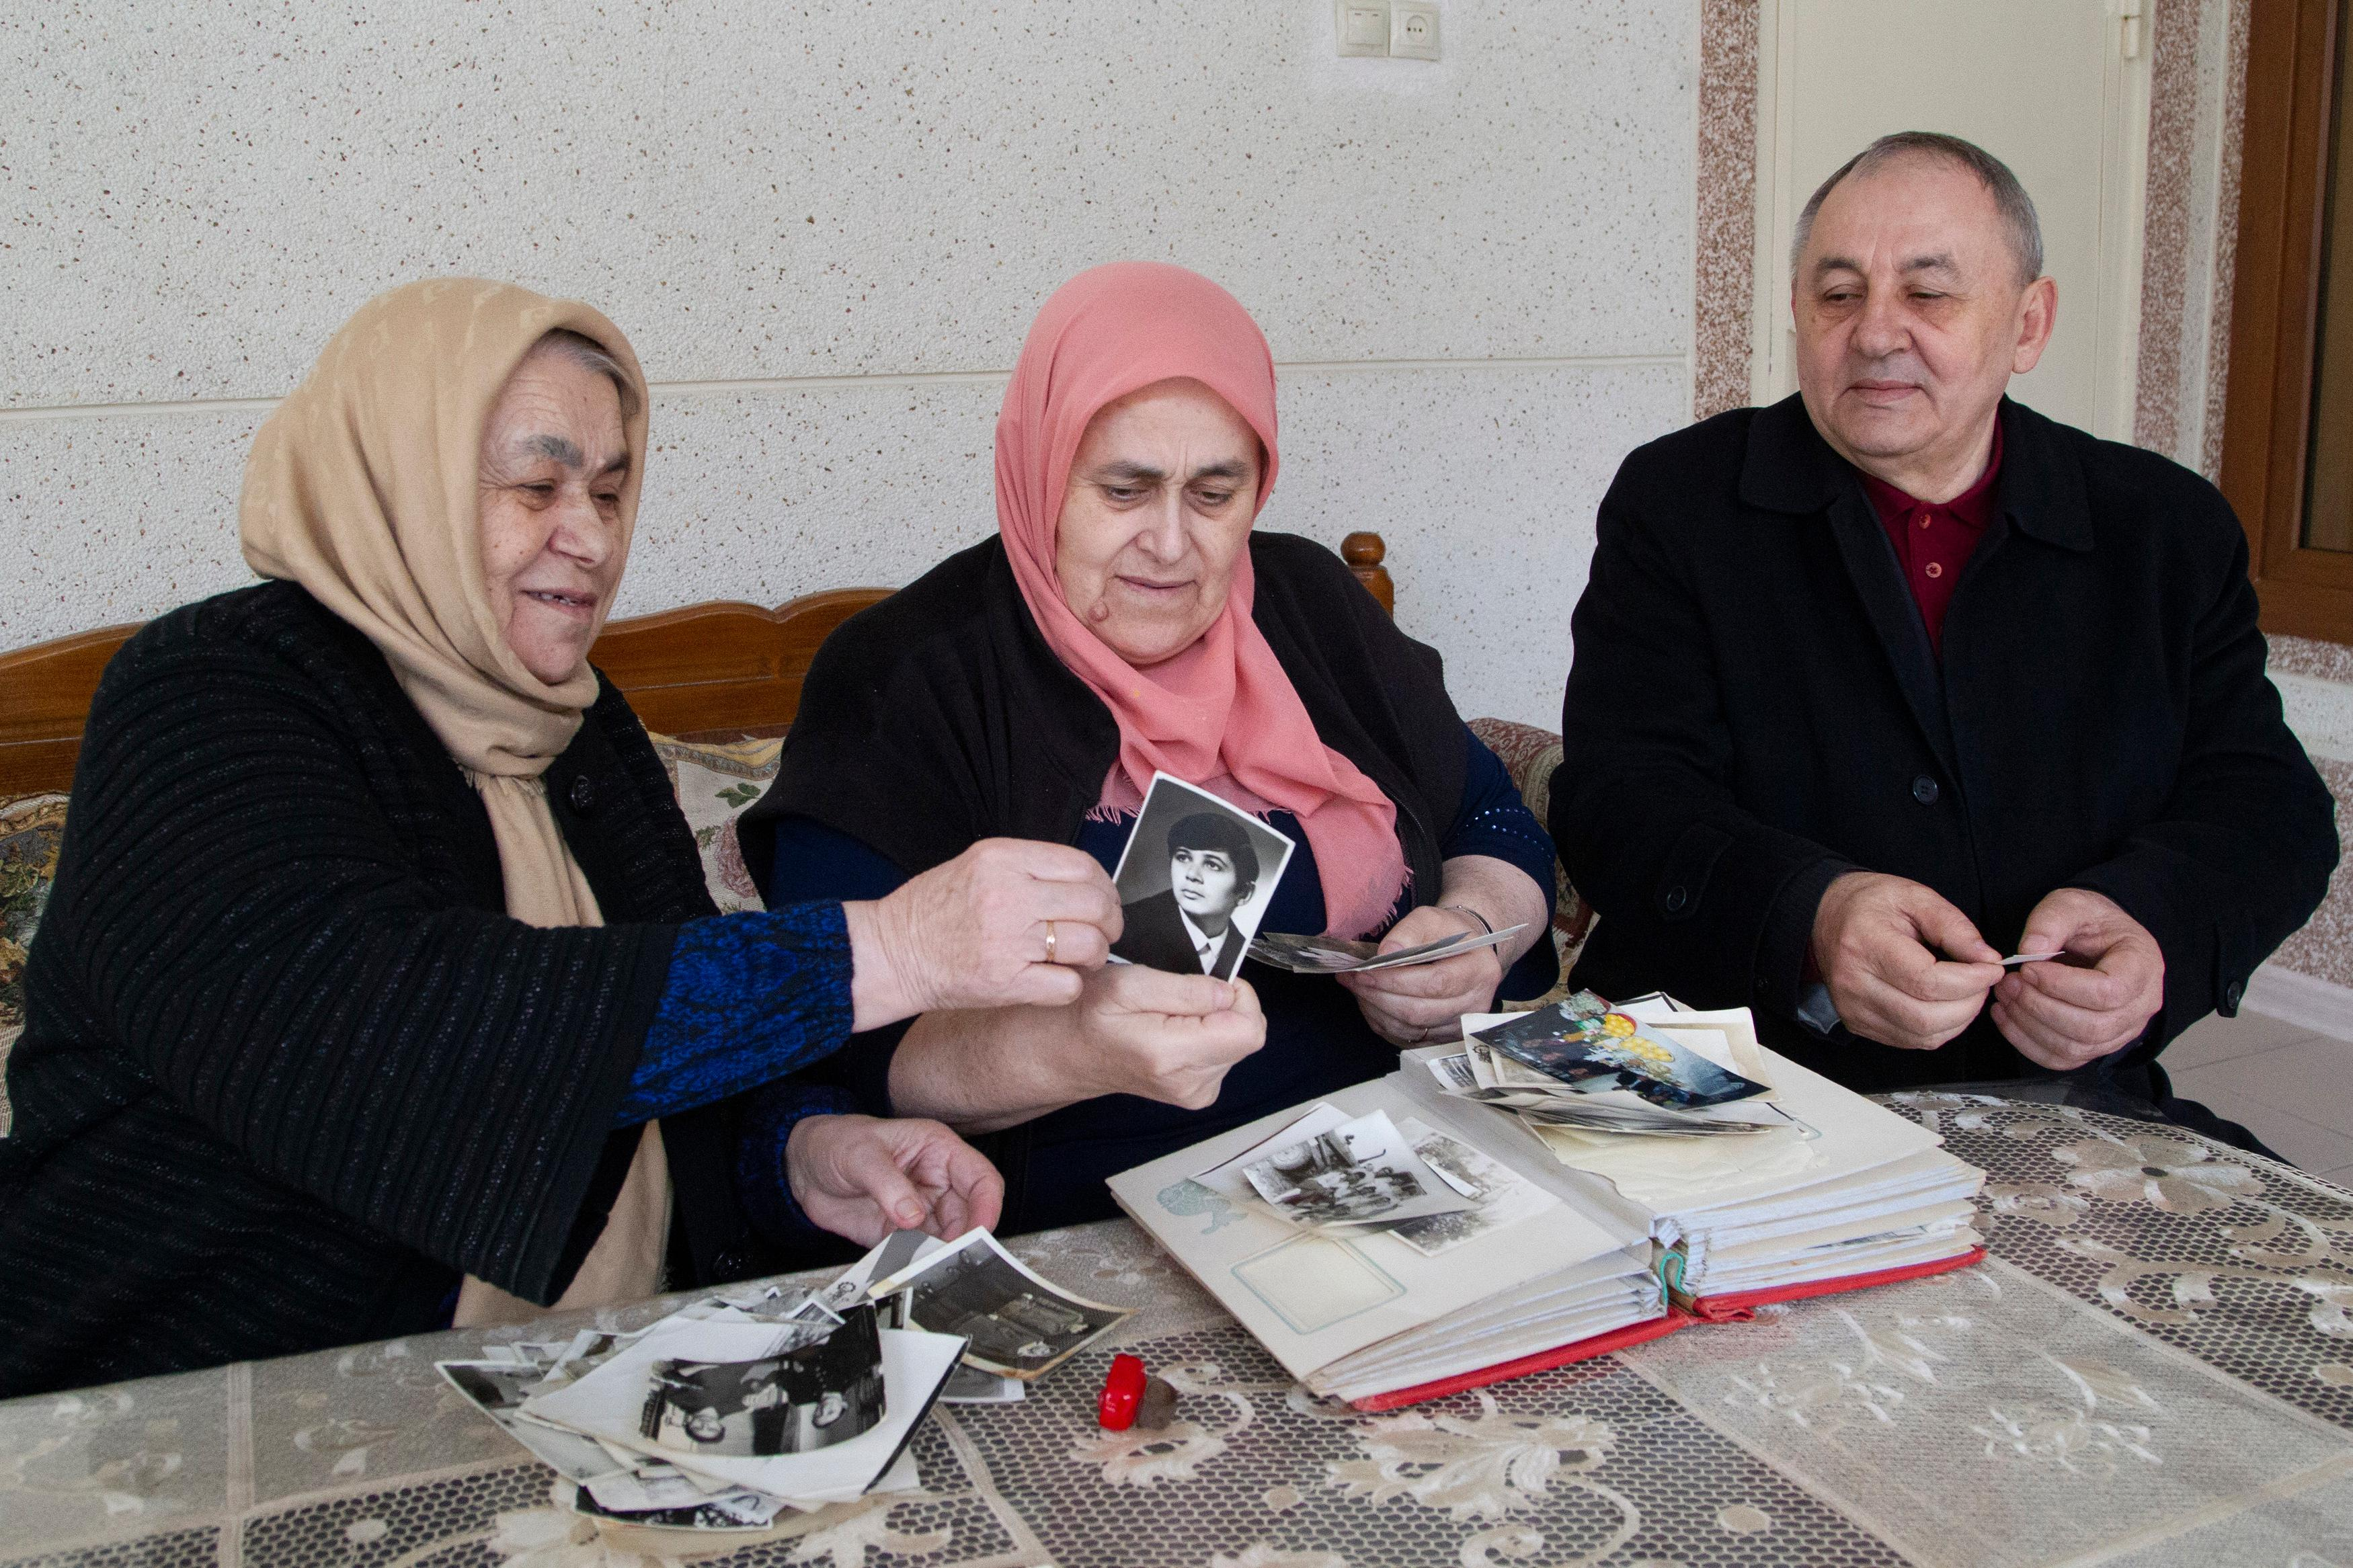 In this Sunday, March 17, 2019, photo, Zharadat Titiyeva, left, Khava Zakriyeva, center, and Yakub Titiyev look through the family pictures that feature their sibling, jailed activist Oyub Titiyev, at their family home in Kurchaloy, Chechnya, Russia.{ } (AP Photo/Musa Sadulayev)